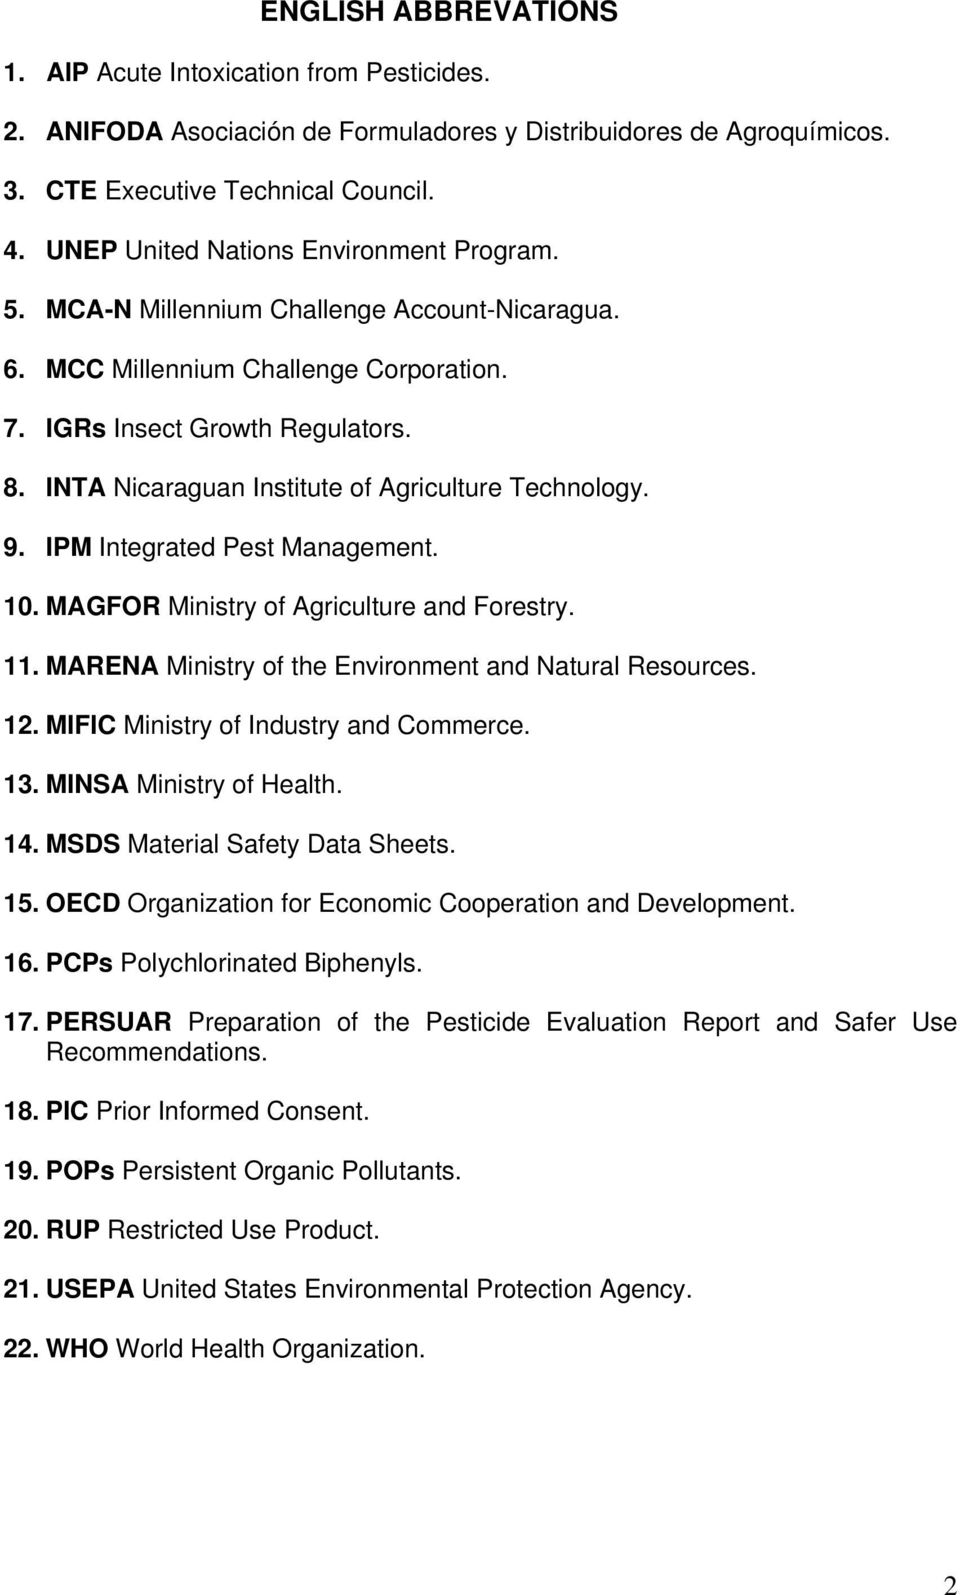 INTA Nicaraguan Institute of Agriculture Technology. 9. IPM Integrated Pest Management. 10. MAGFOR Ministry of Agriculture and Forestry. 11. MARENA Ministry of the Environment and Natural Resources.